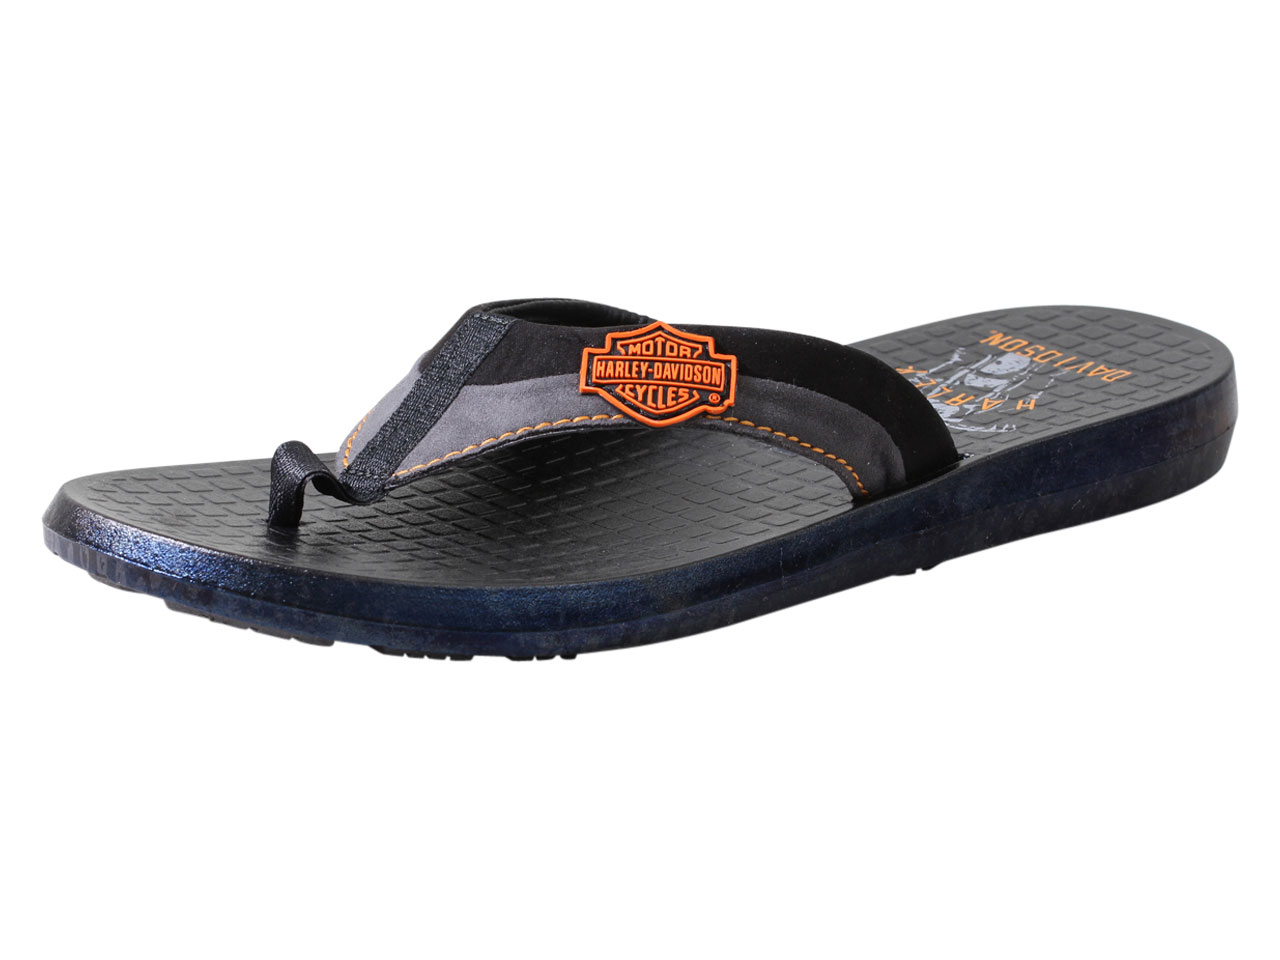 5d94253794105 Harley-Davidson Men s Adams Flip Flops Sandals Shoes